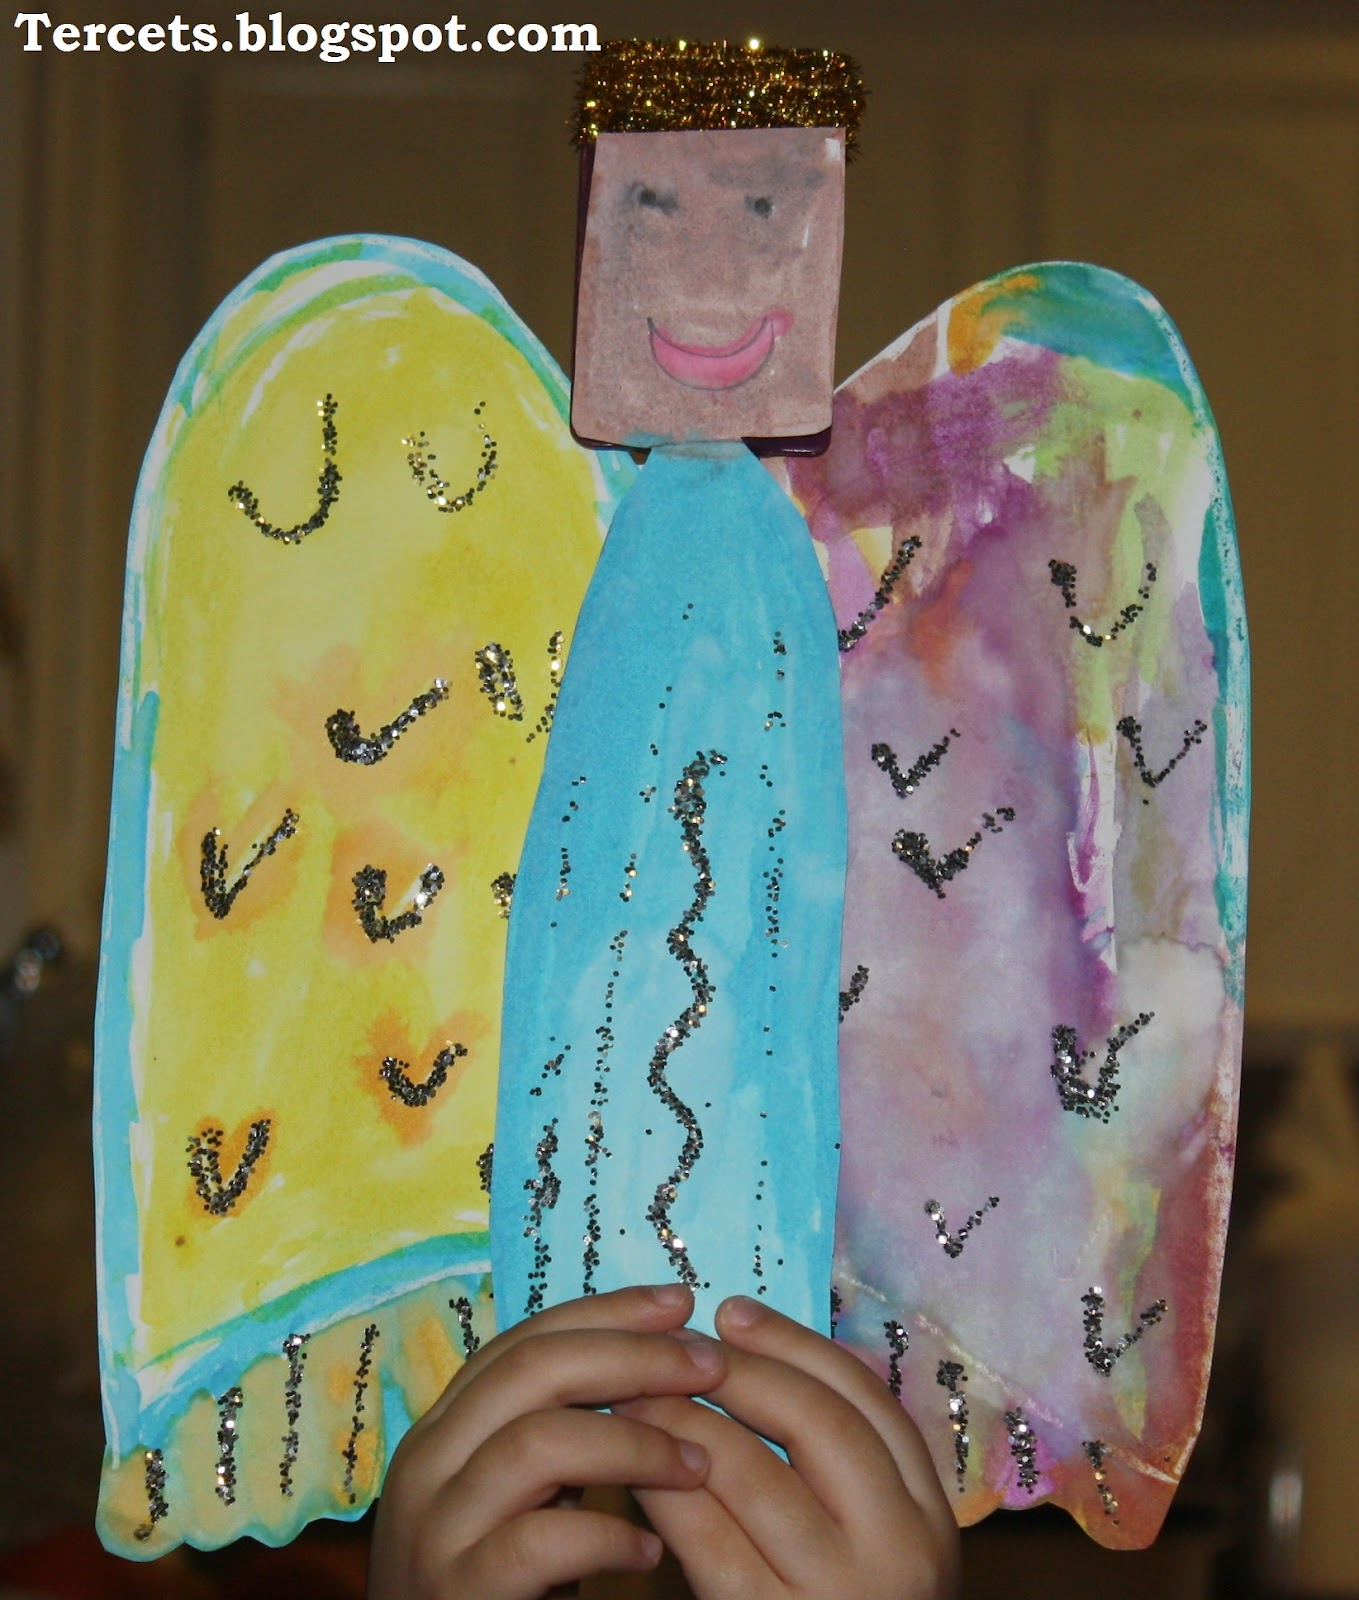 http://tercets.blogspot.com/2012/03/angel-puppet-for-annunciation.html